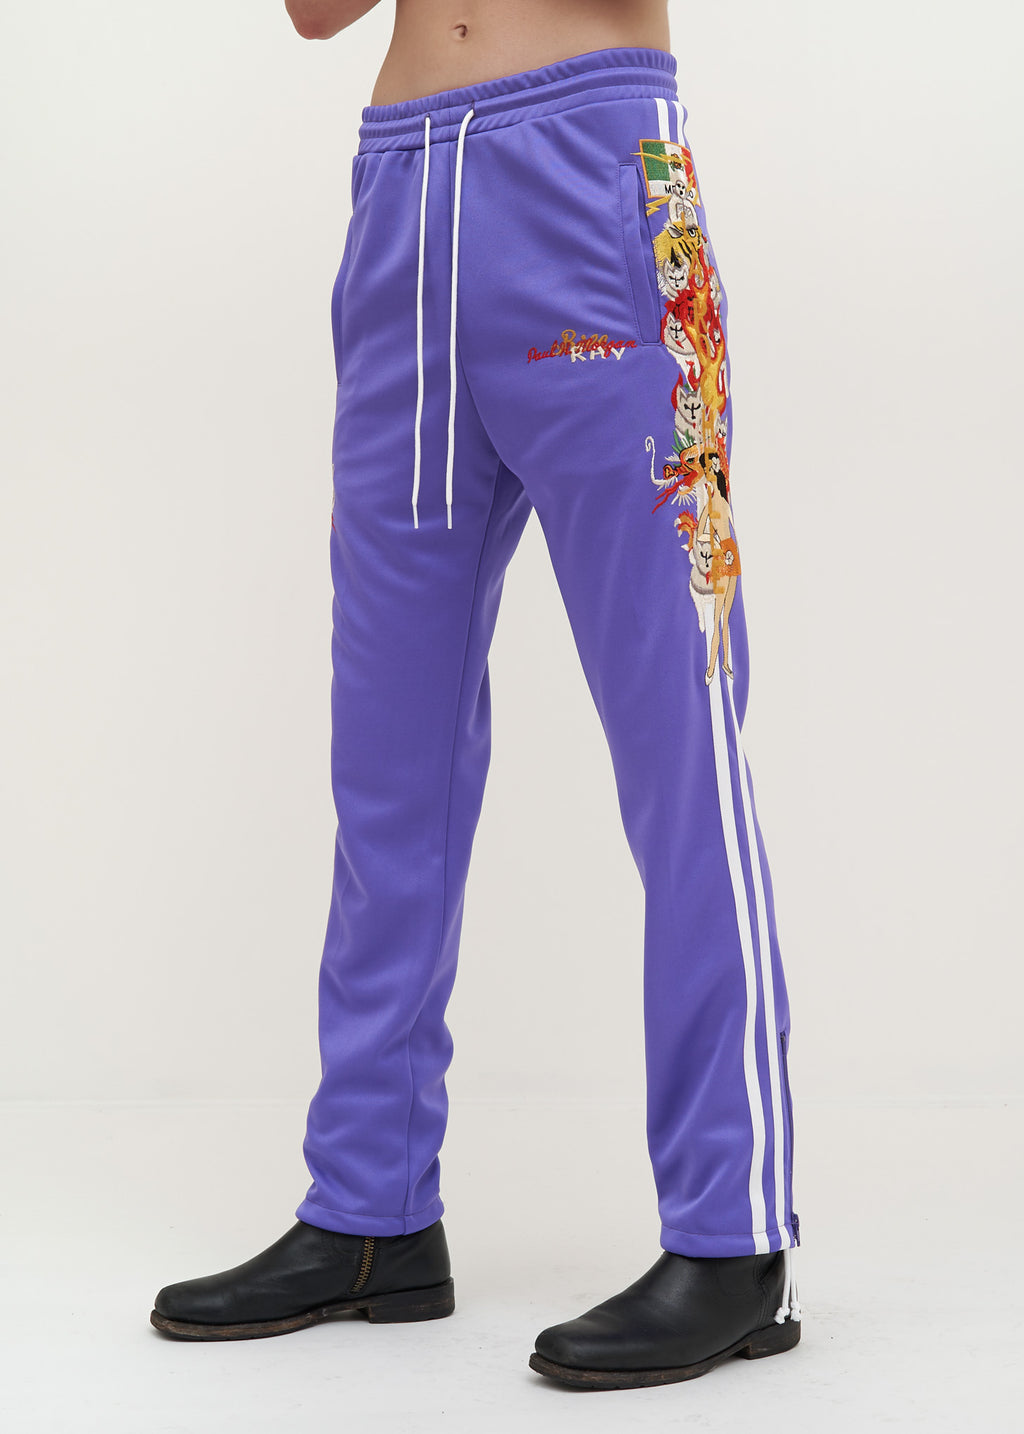 Purple Chaos Embroidery Track Pants